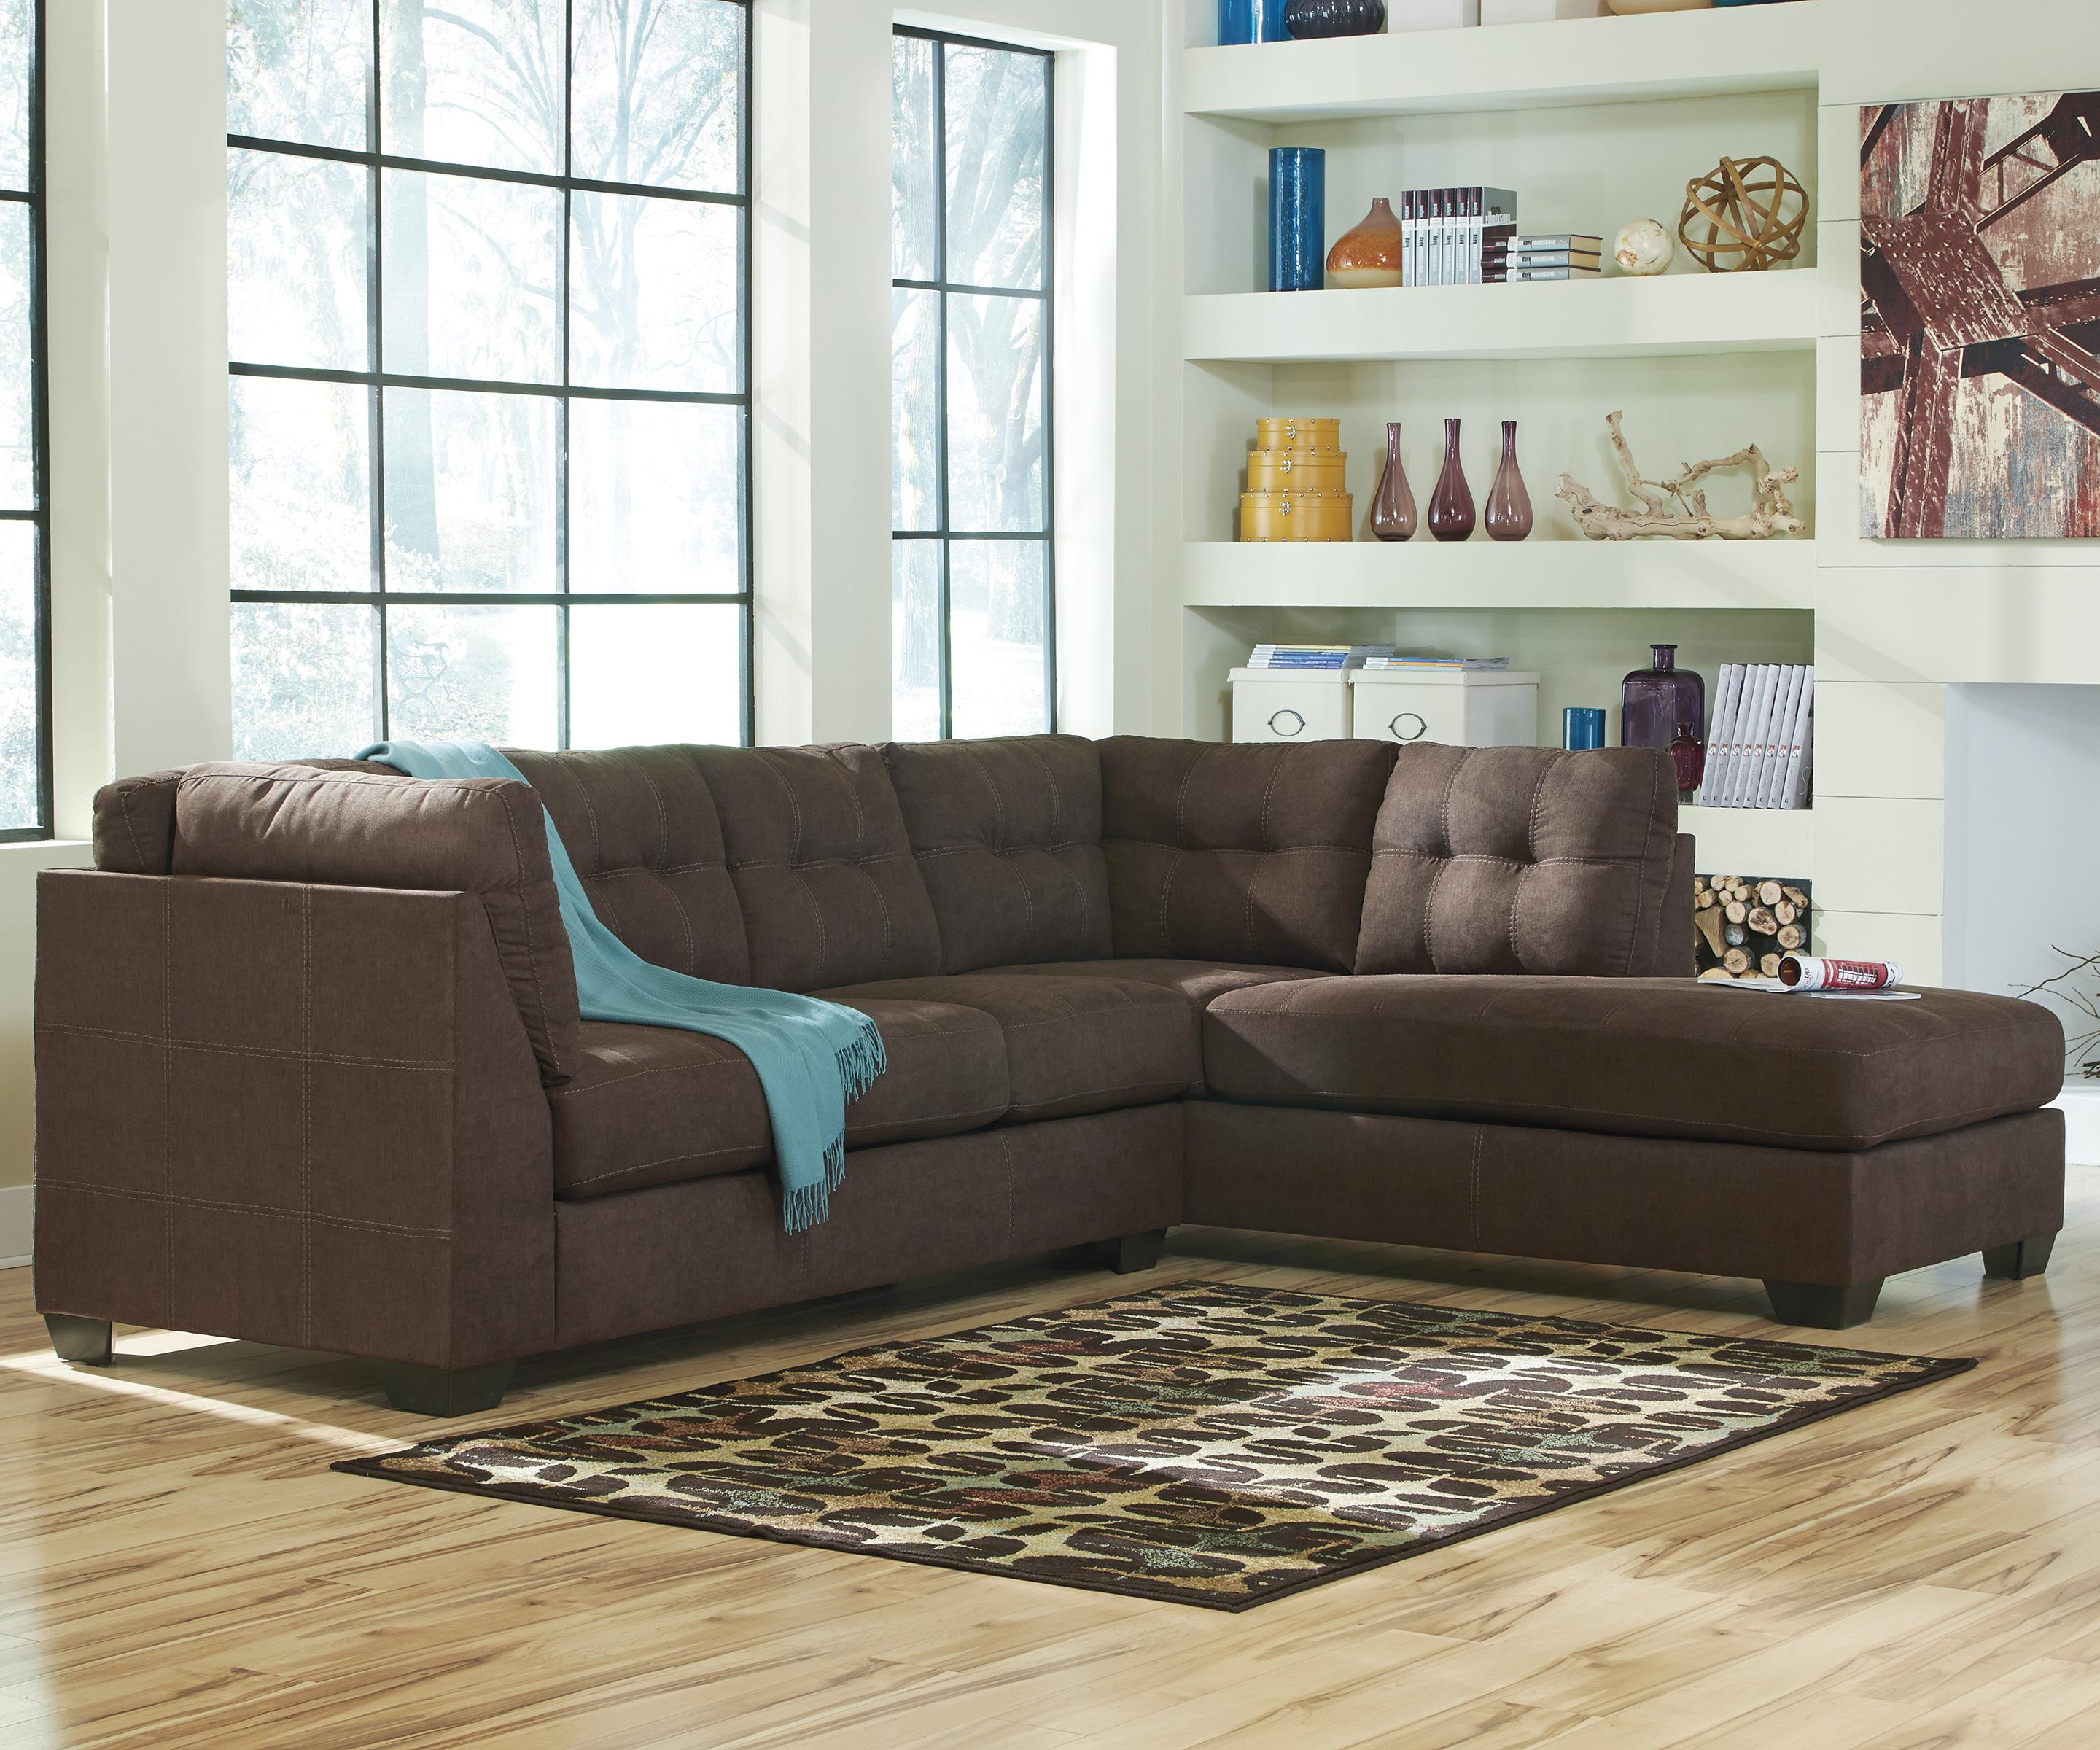 Maier - Walnut 2-Piece Sectional w/ Sleeper Sofa & Chaise by Benchcraft at Beck's Furniture